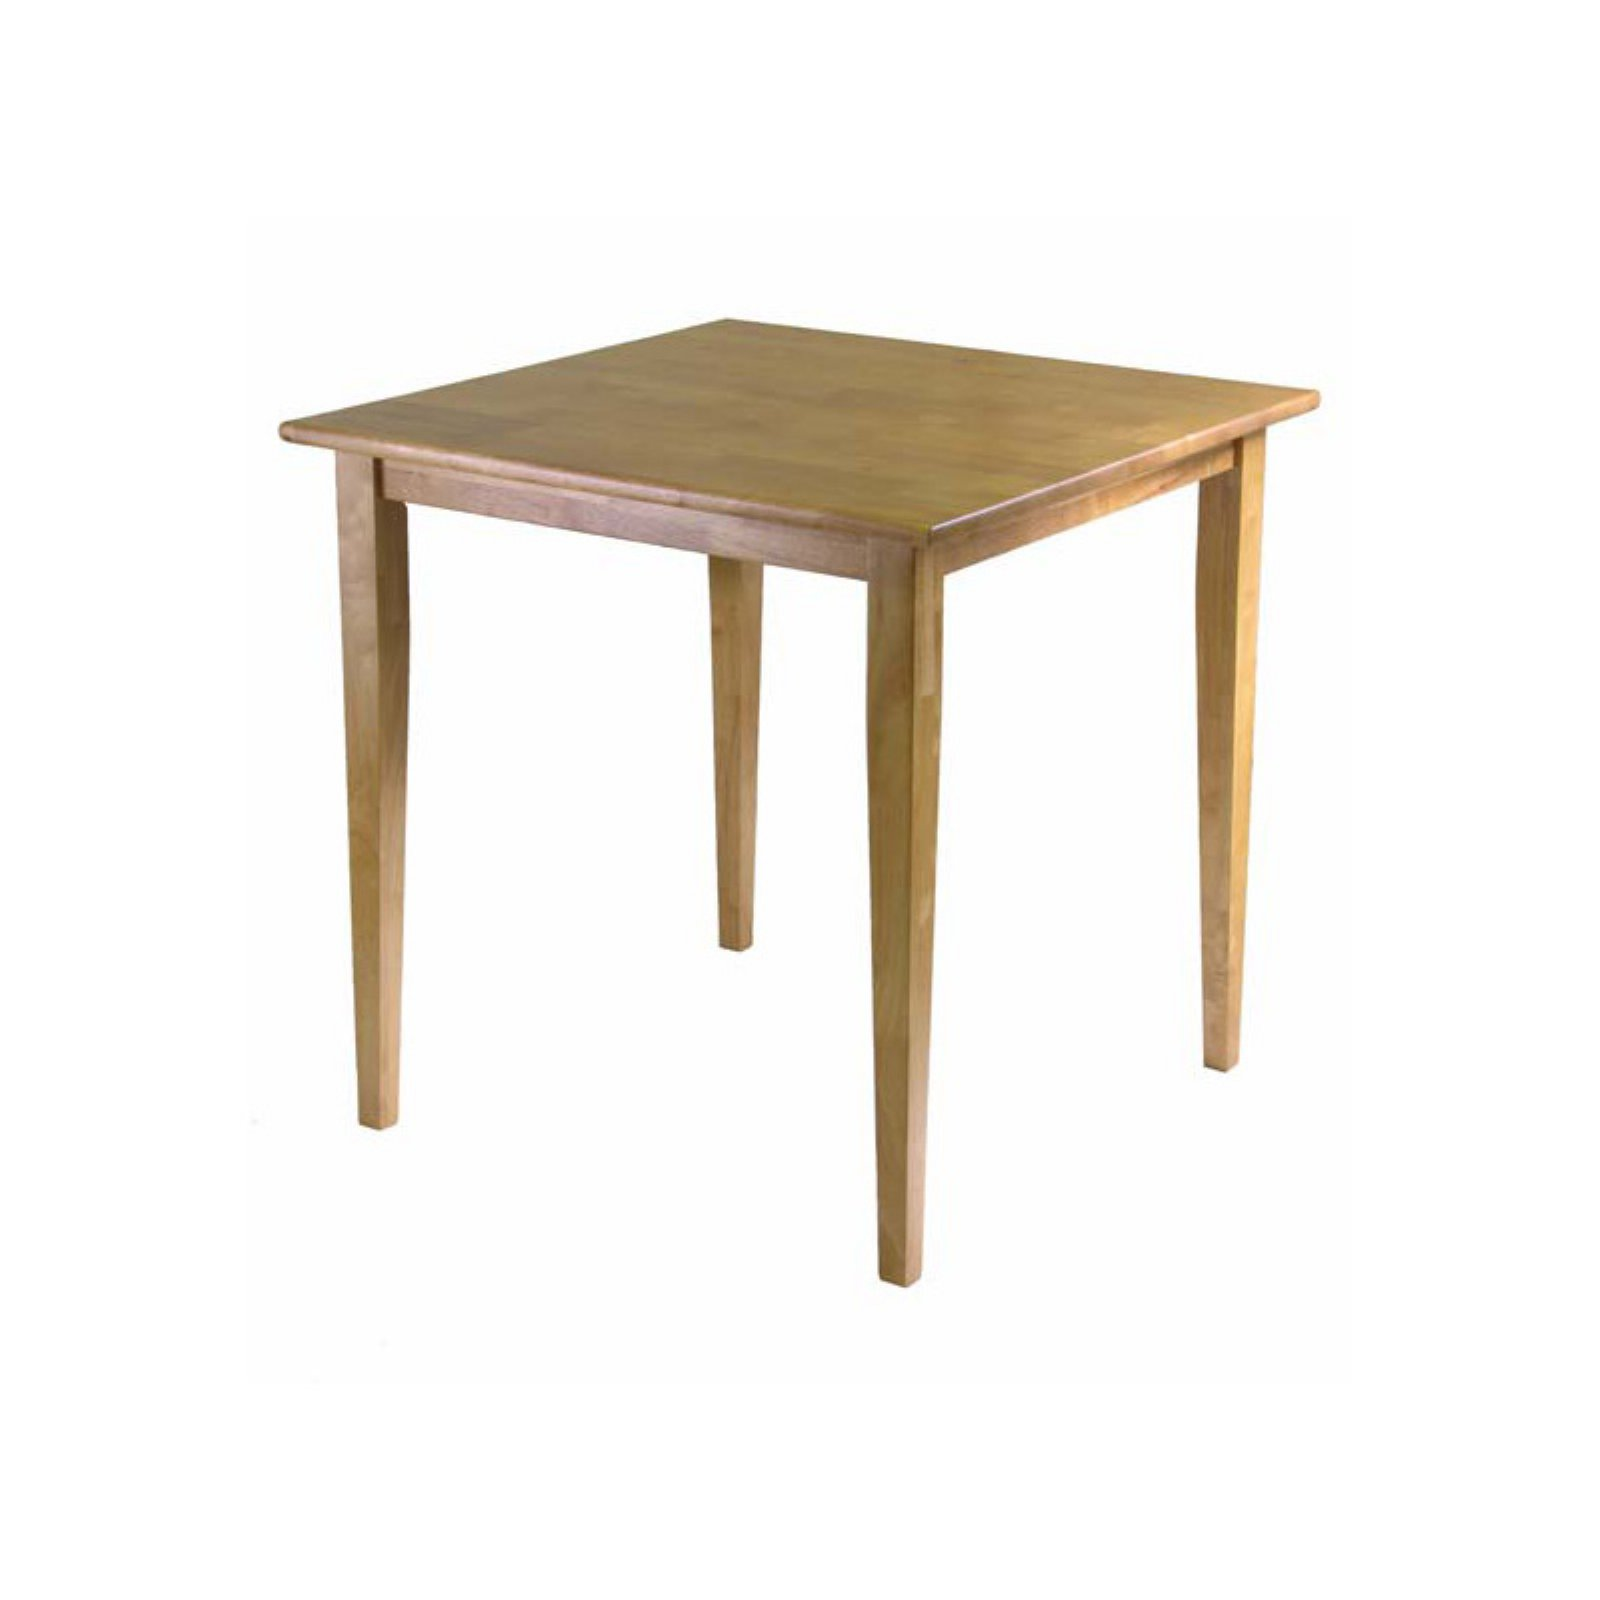 Charming Groveland Square Dining Table, Light Oak